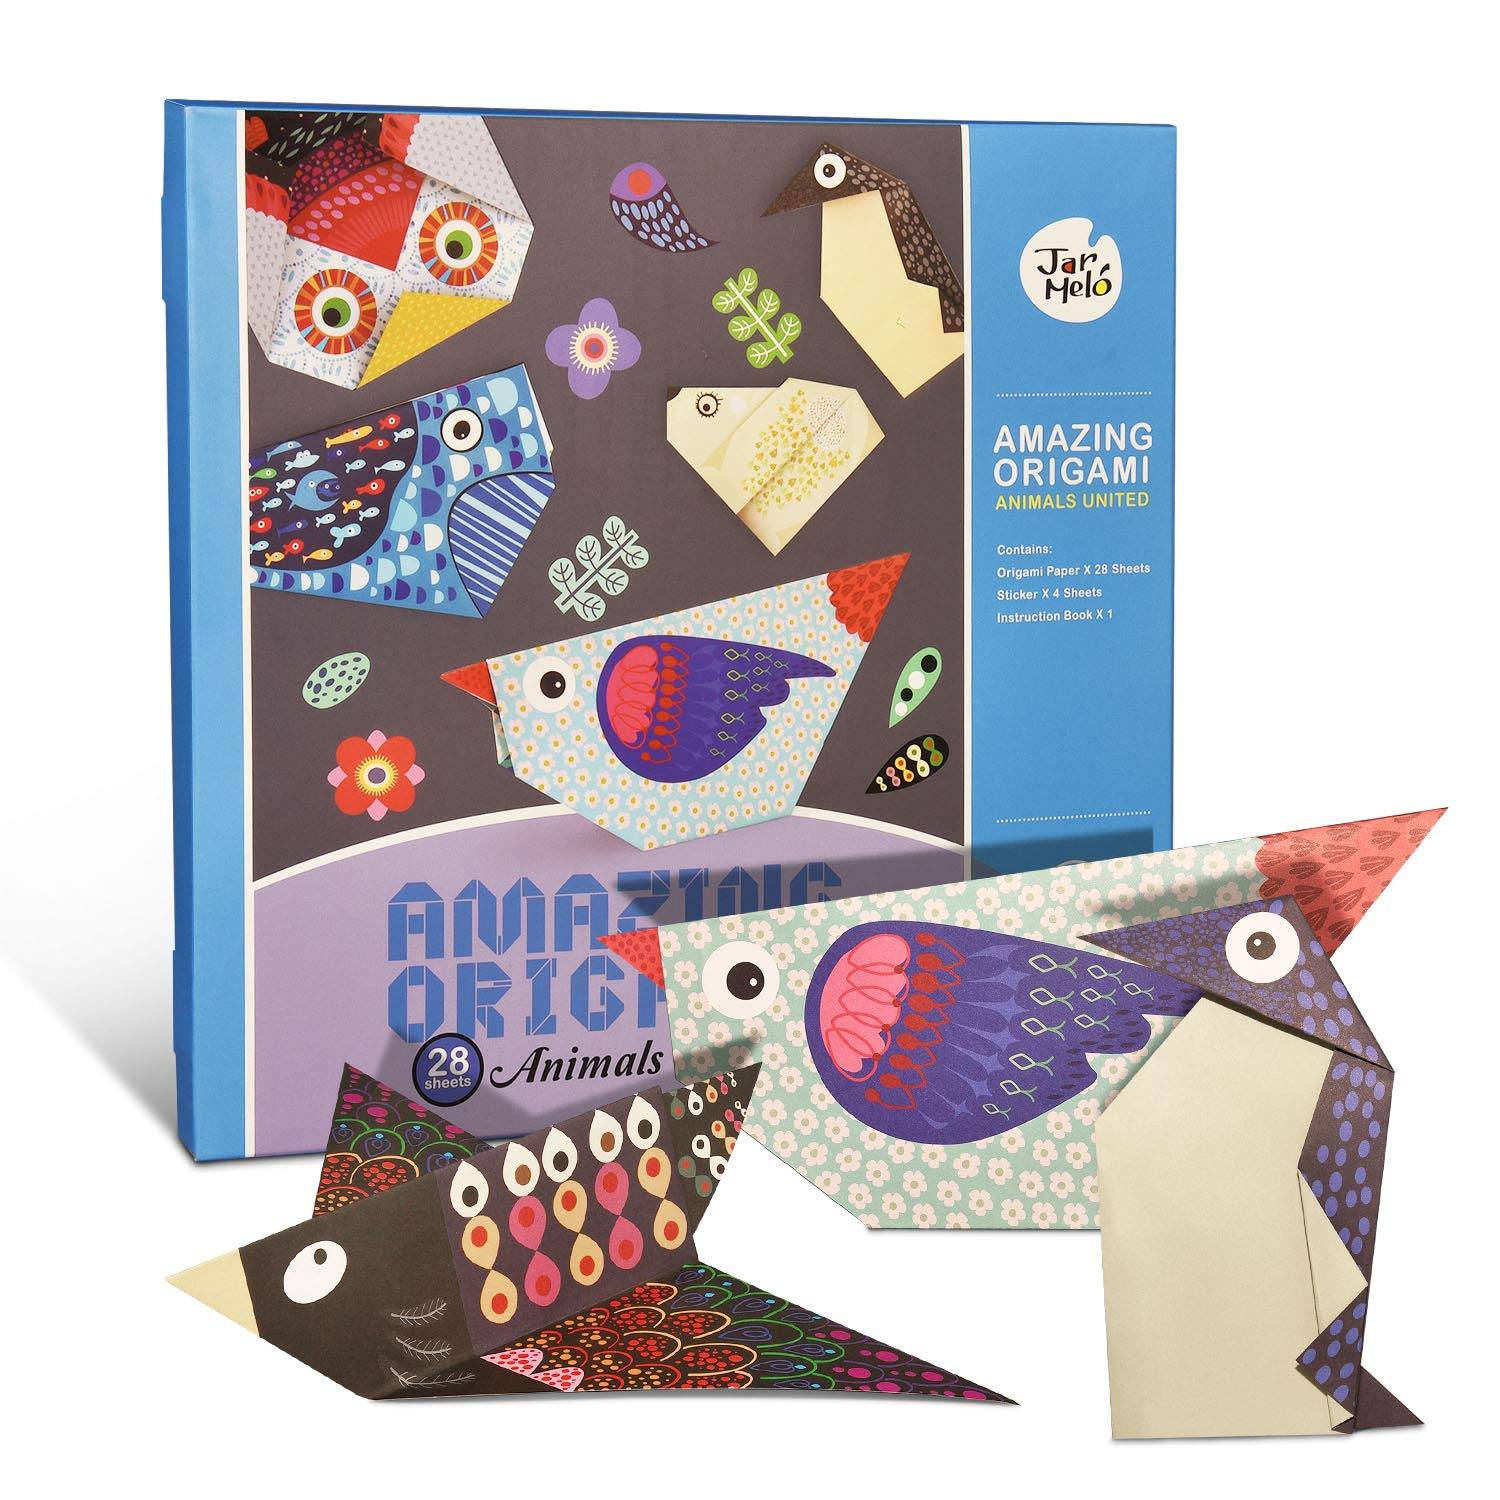 Arts And Crafts for Girls Age 5-12, SOKY Paper Crafts for Kids Ages 4-8 Animal Origami for Kids 6-7 Year Old Christmas Birthday Gifts Origami for Kids Beginners Toys Stocking Stuffers for Girls Kids by SOKY